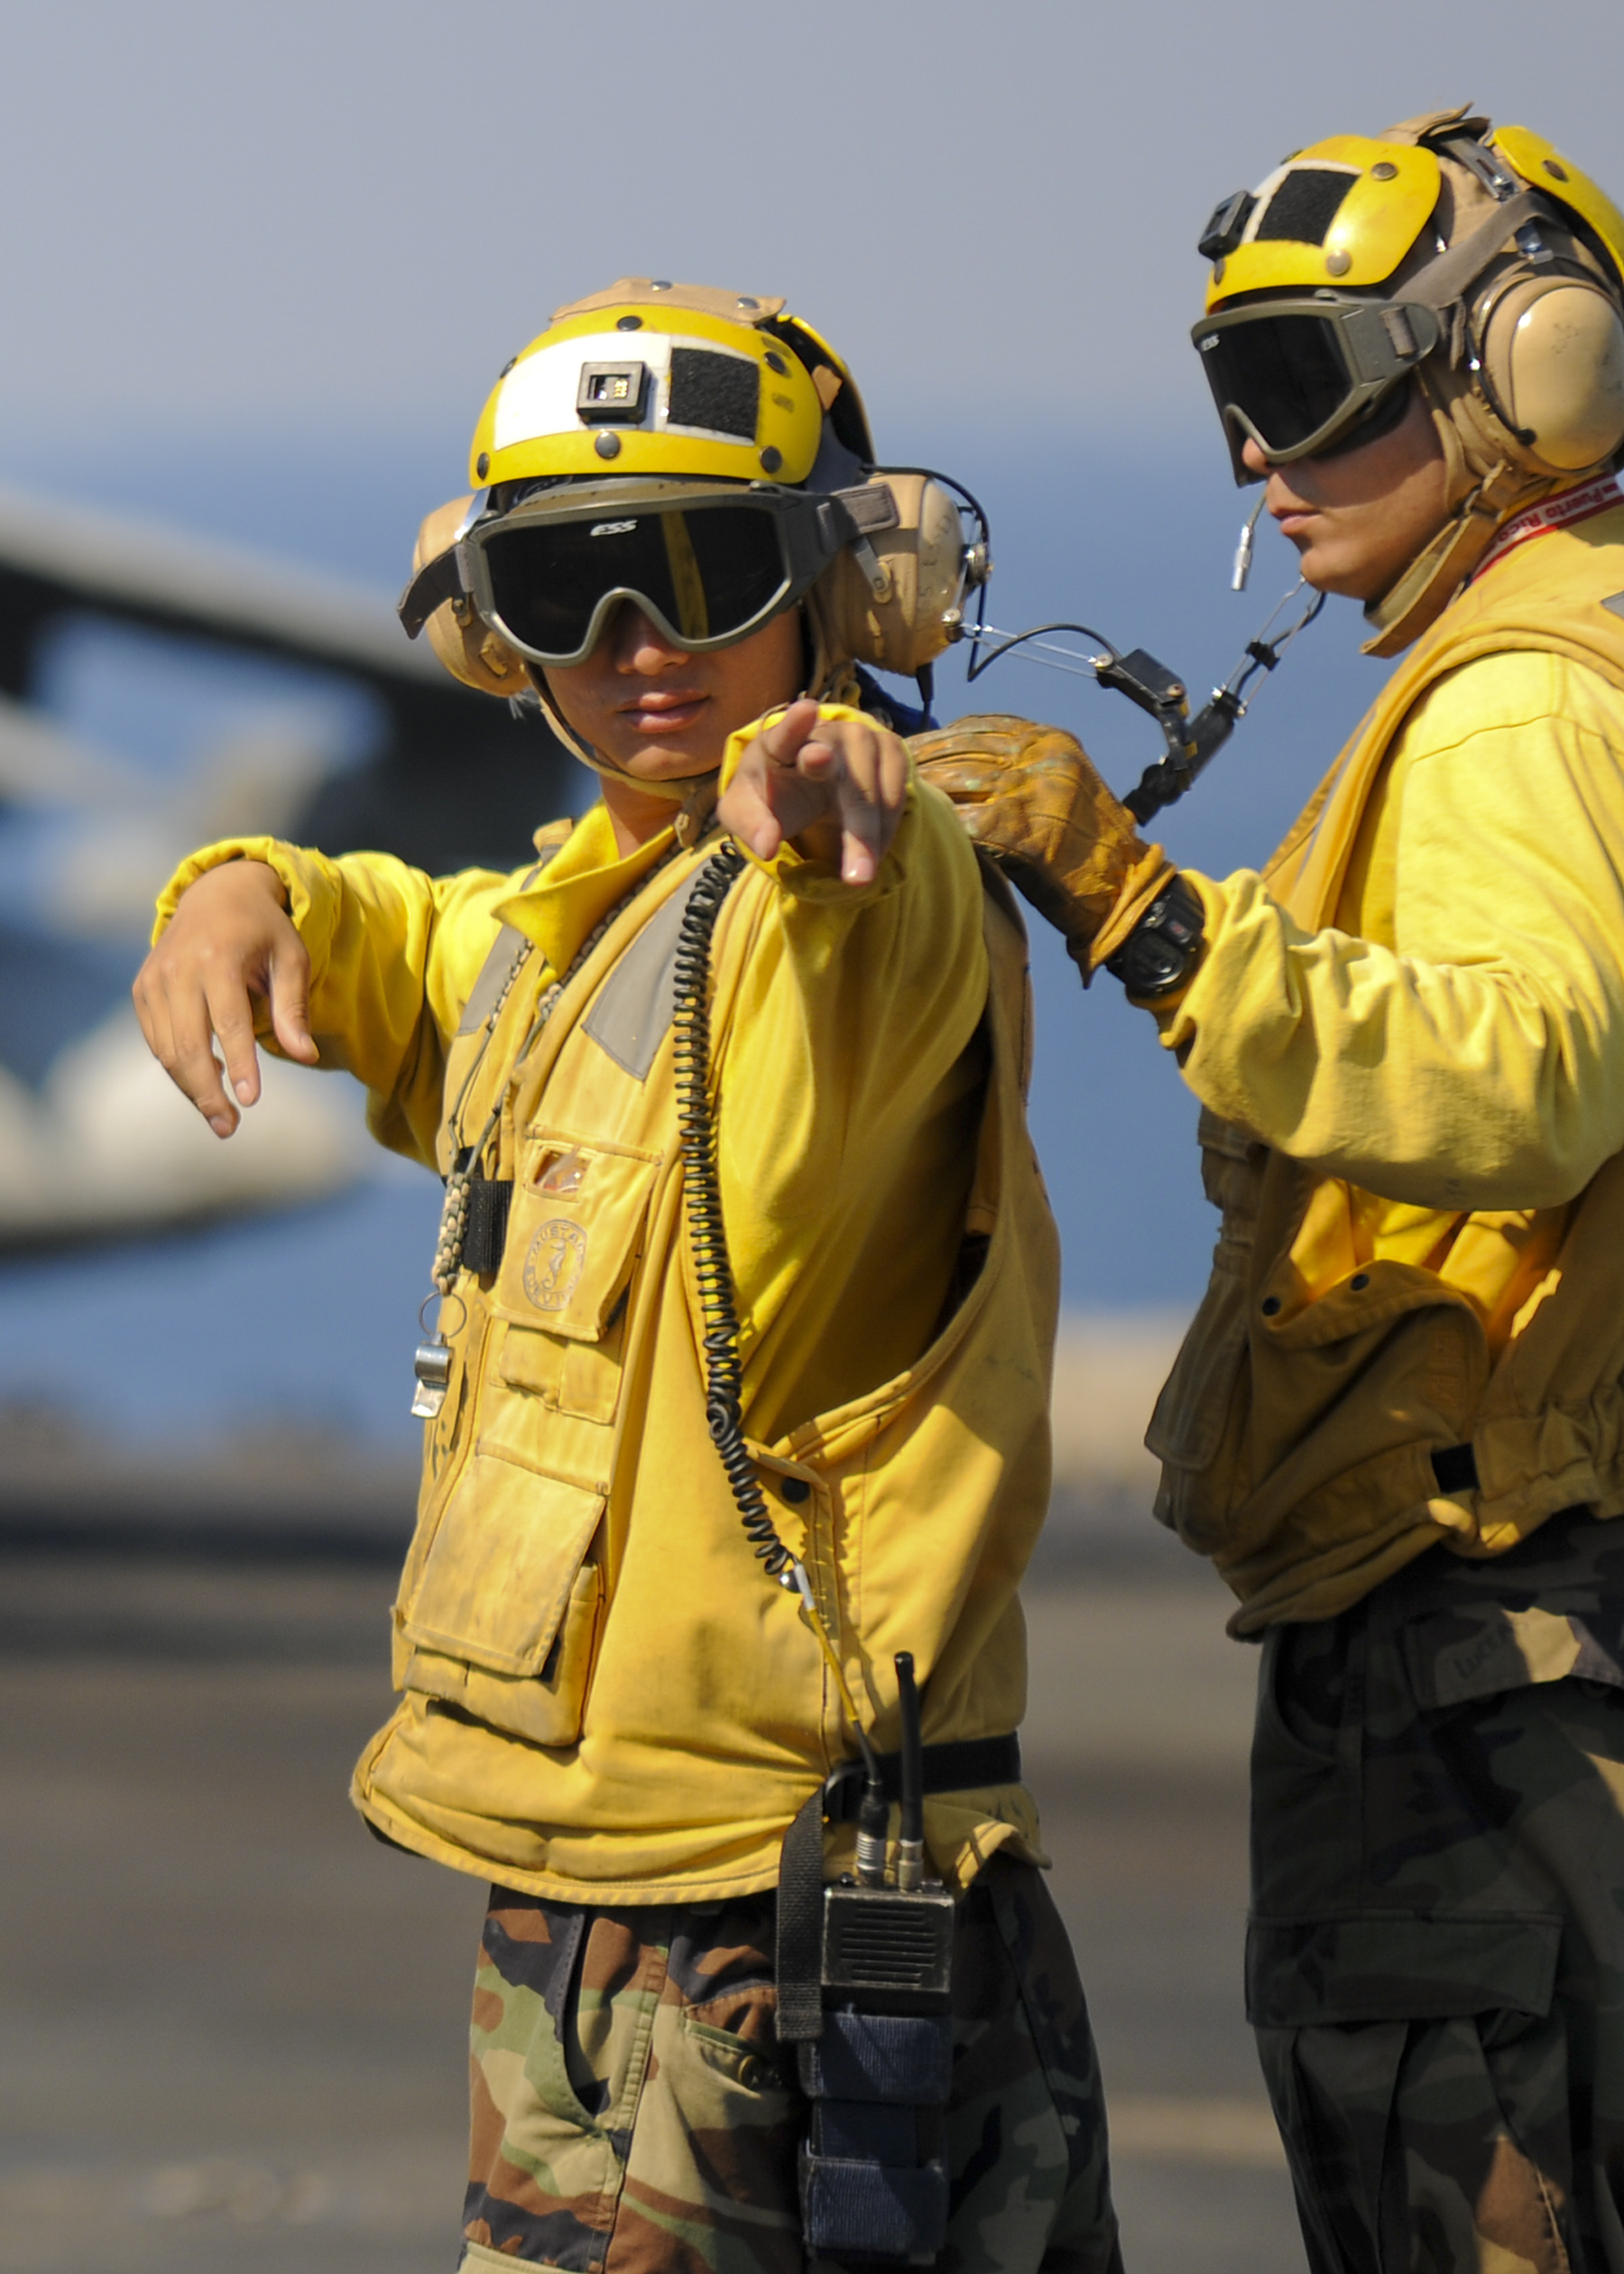 File:US Navy 100309-N-9950J-130 Aviation Boatswain's Mate ...